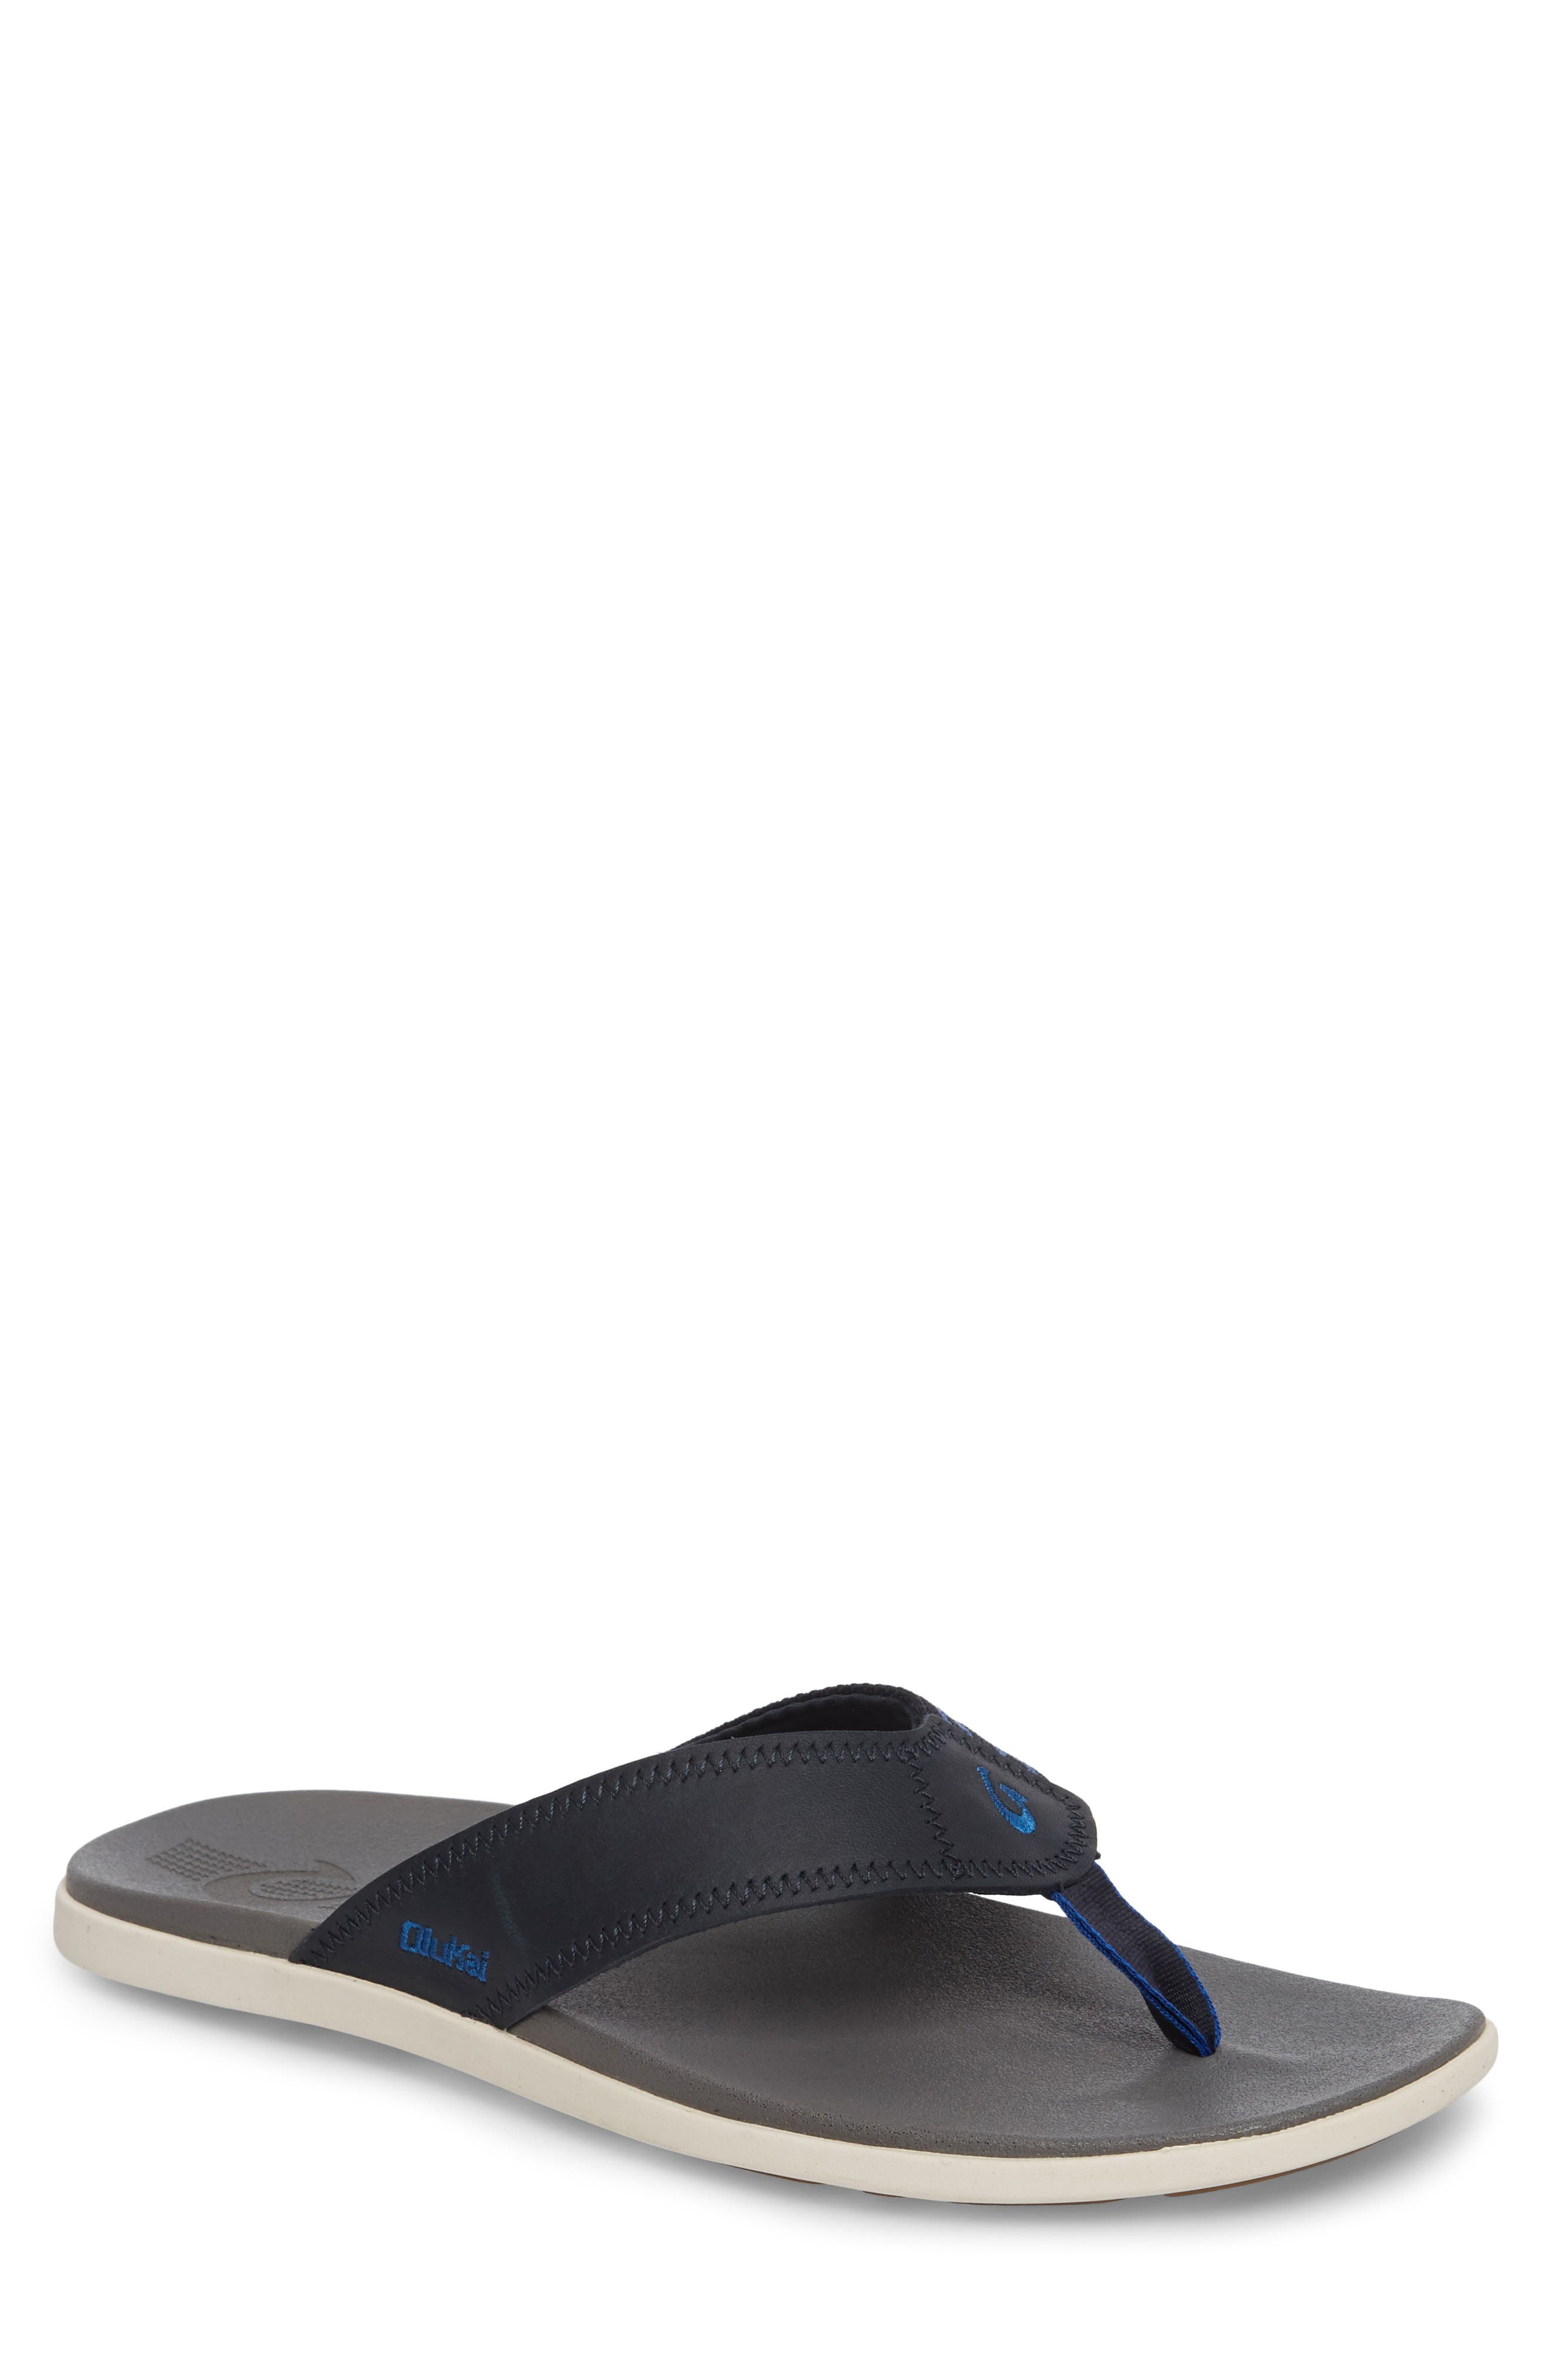 Kinona Flip Flop,                         Main,                         color, Trench Blue/ Charcoal Leather